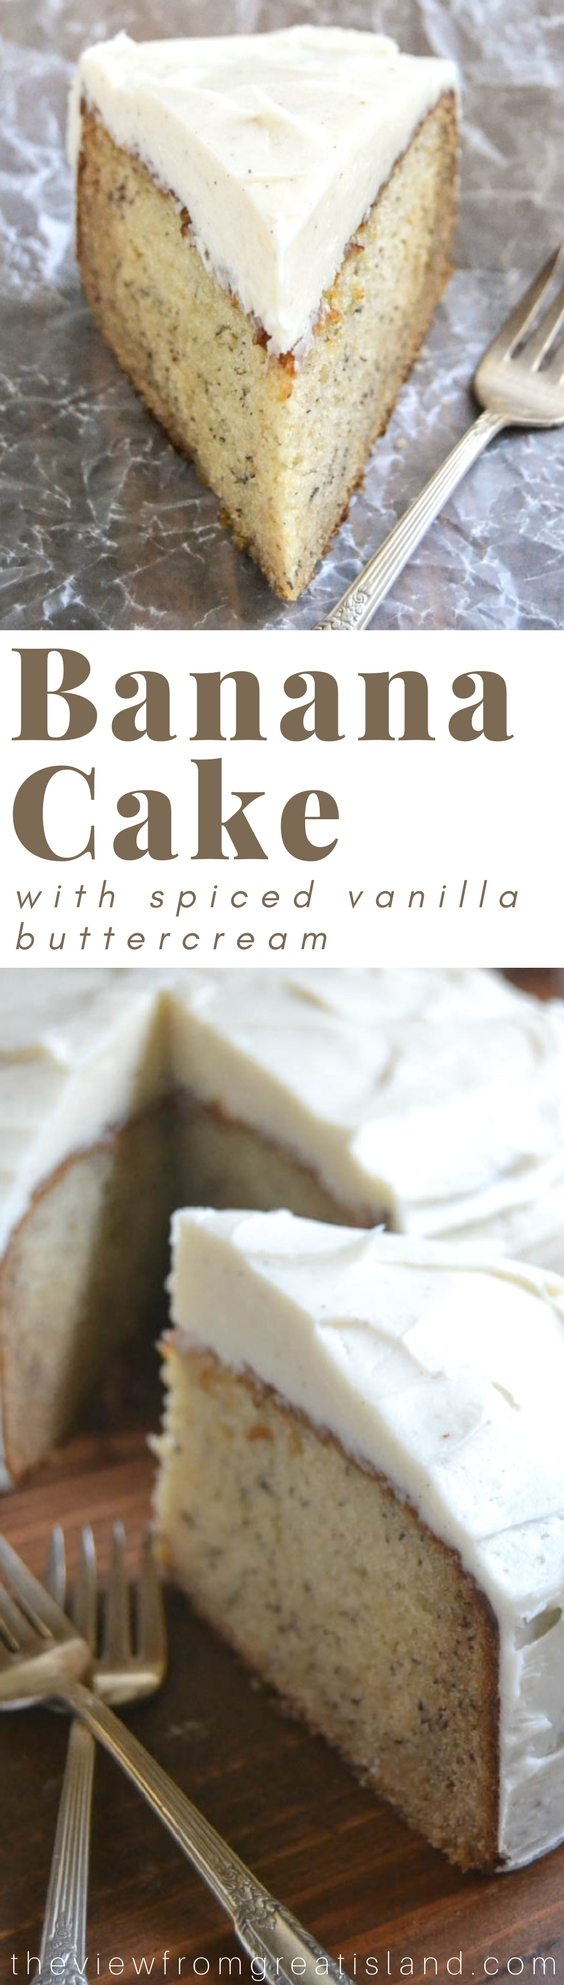 Banana Cake with Spiced Vanilla Buttercream is probably the most luxurious  outcome imaginable for those over ripe bananas on your counter!  If you love banana bread you're going to flip for this easy banana snack cake. #bananacake #banana #cake #dessert #buttercream #spicedbuttercream #frosting #baking #bananabread #snackcake